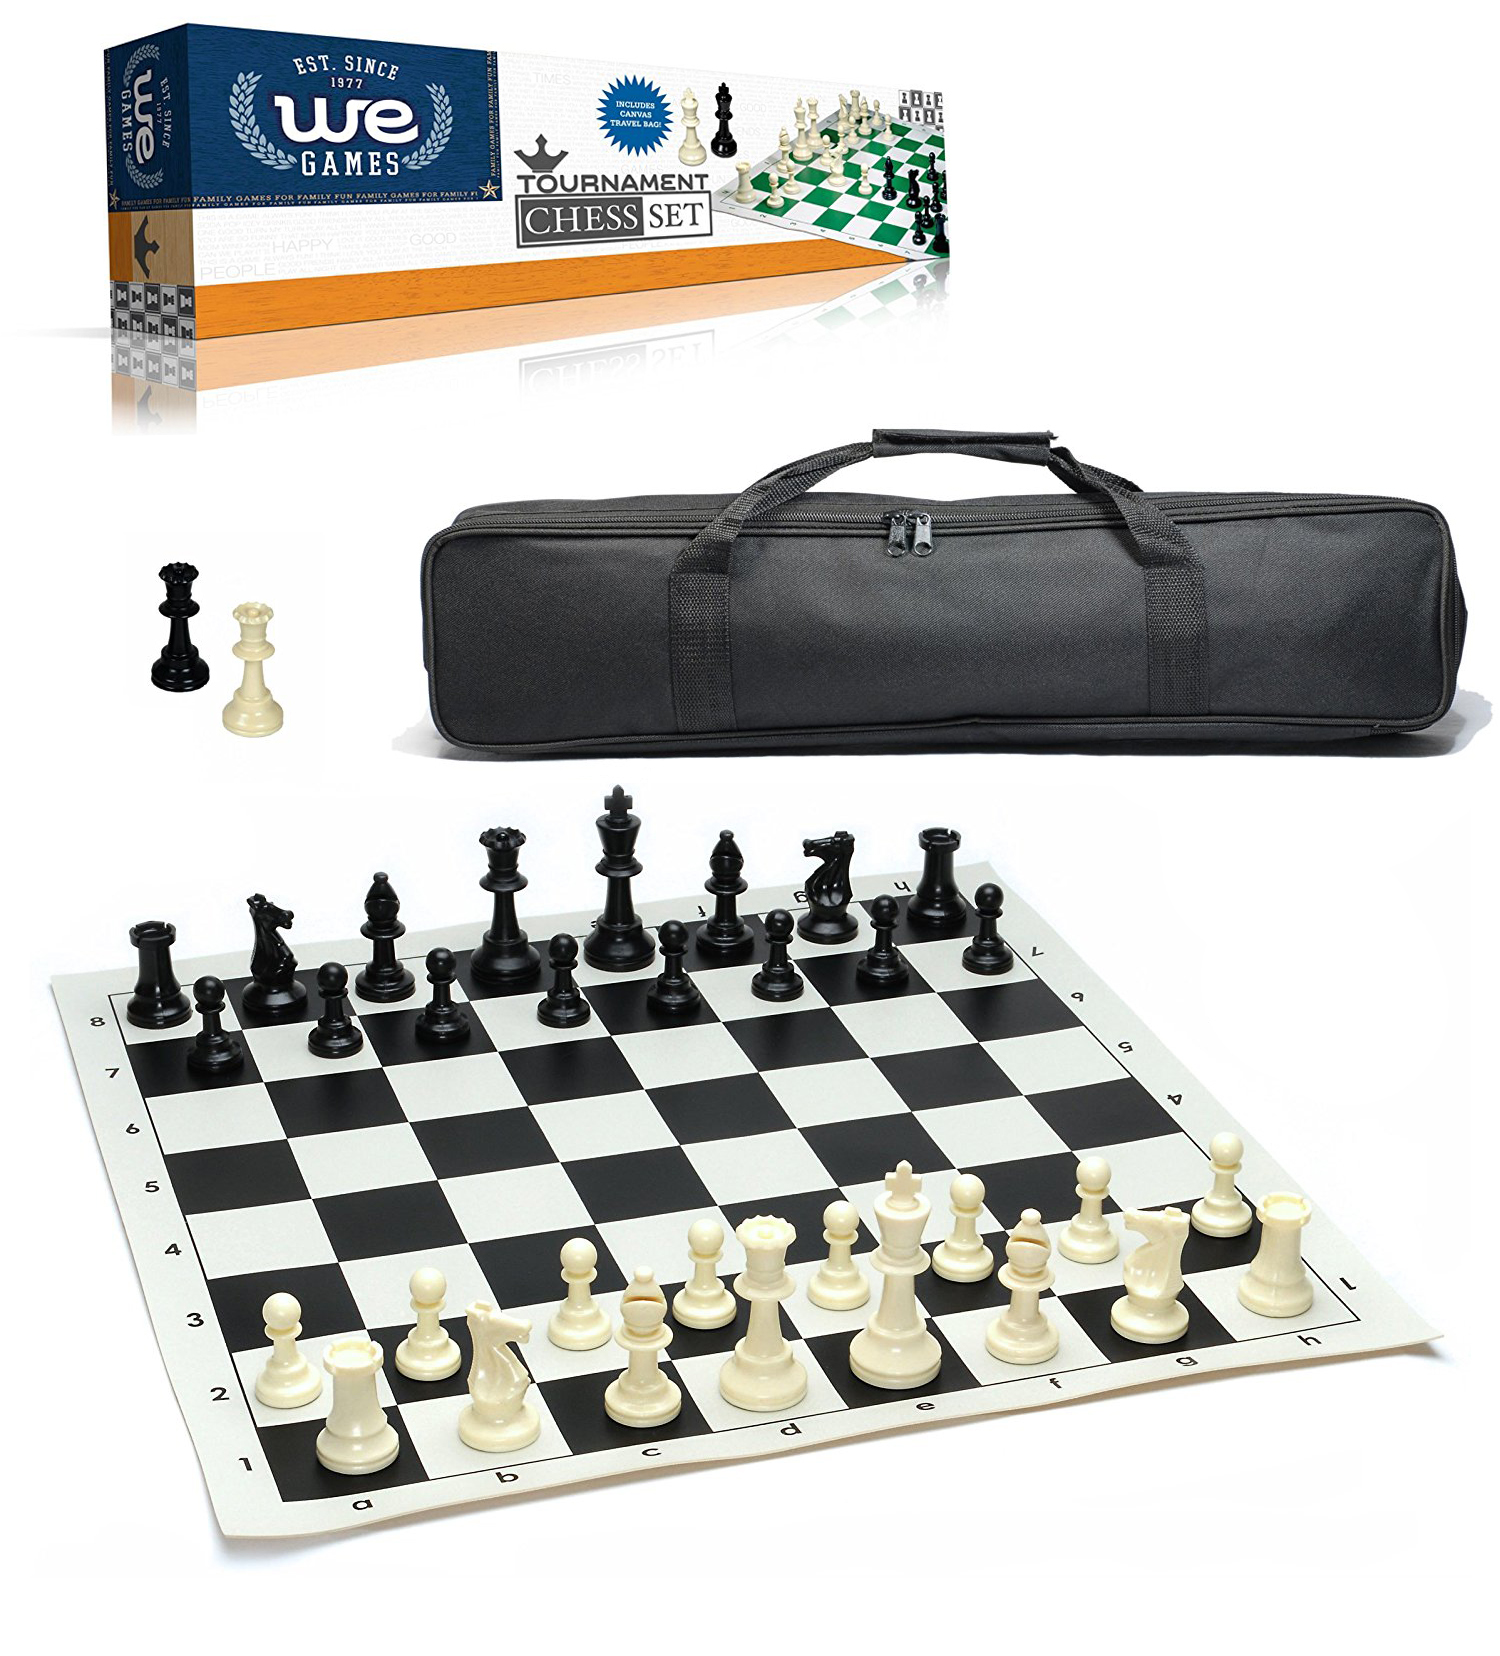 STANDARD CHESS PIECES BOARD DELUXE BAG TOURNAMENT SET